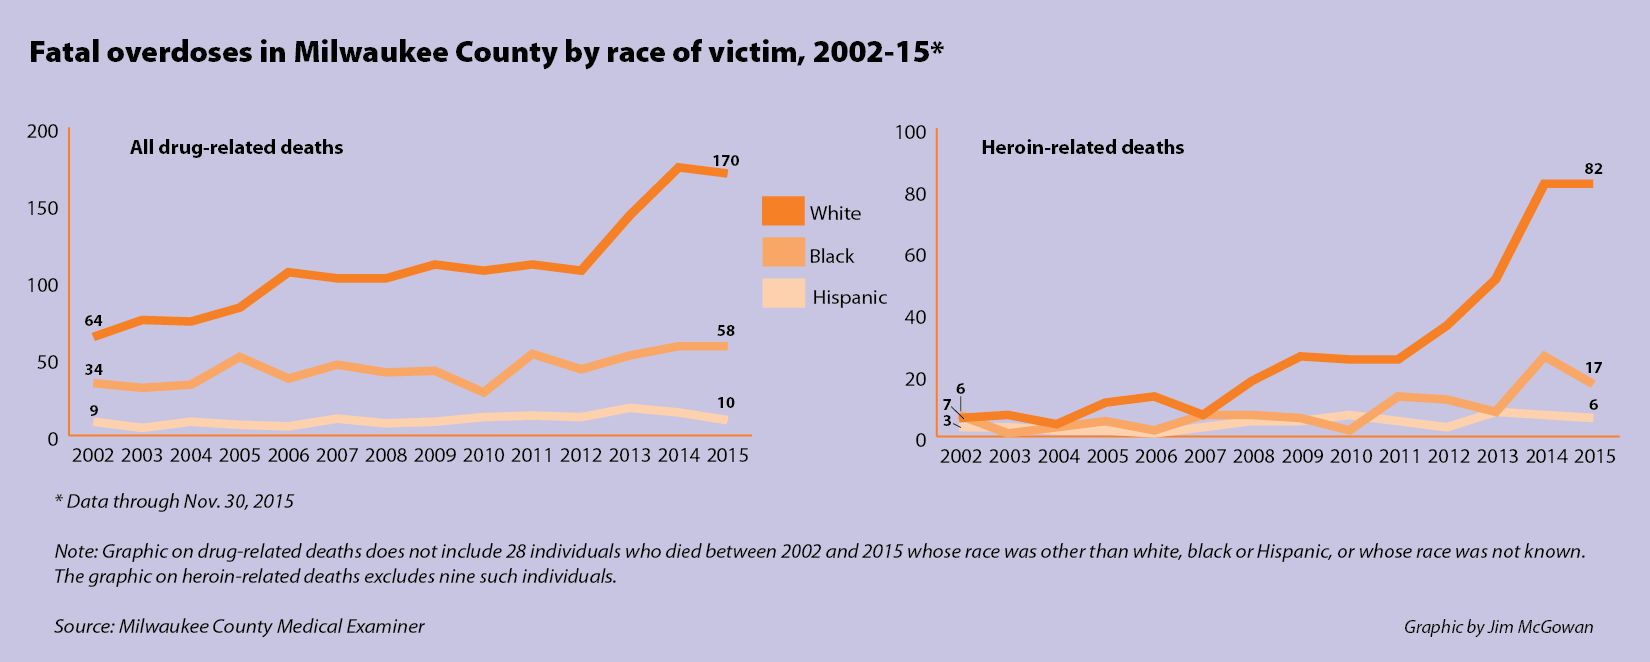 Fatal overdoses in Milwaukee County by race of victim, 2002-15*